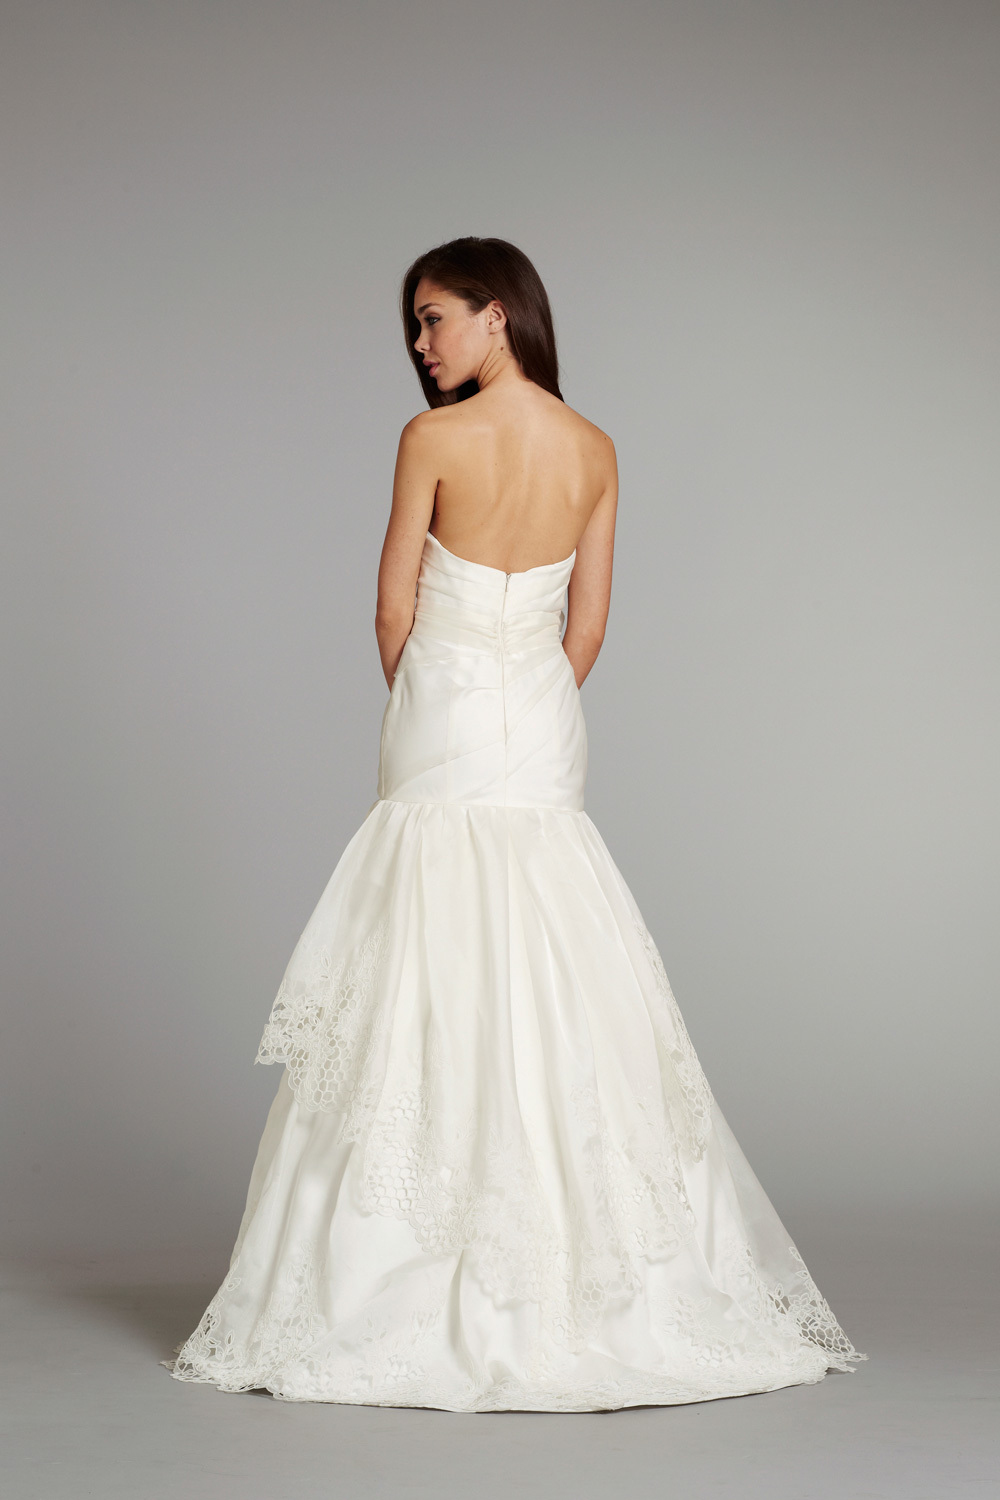 Bridal-gown-wedding-dress-jlm-hayley-paige-fall-2012-savannah-back.full